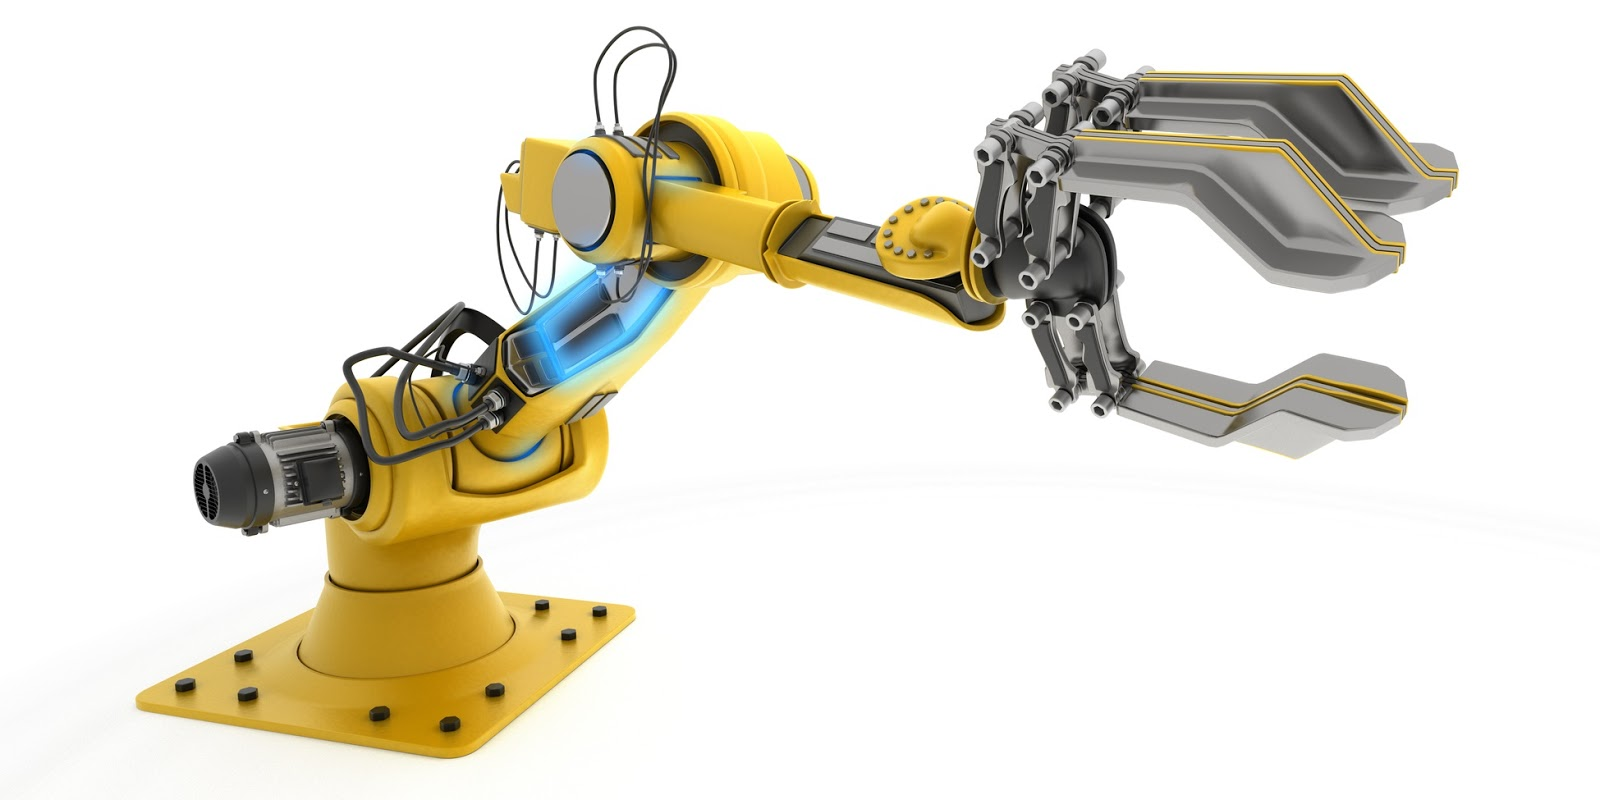 Small Hydraulic Robot Arm : Frontline environmental technologies group inc